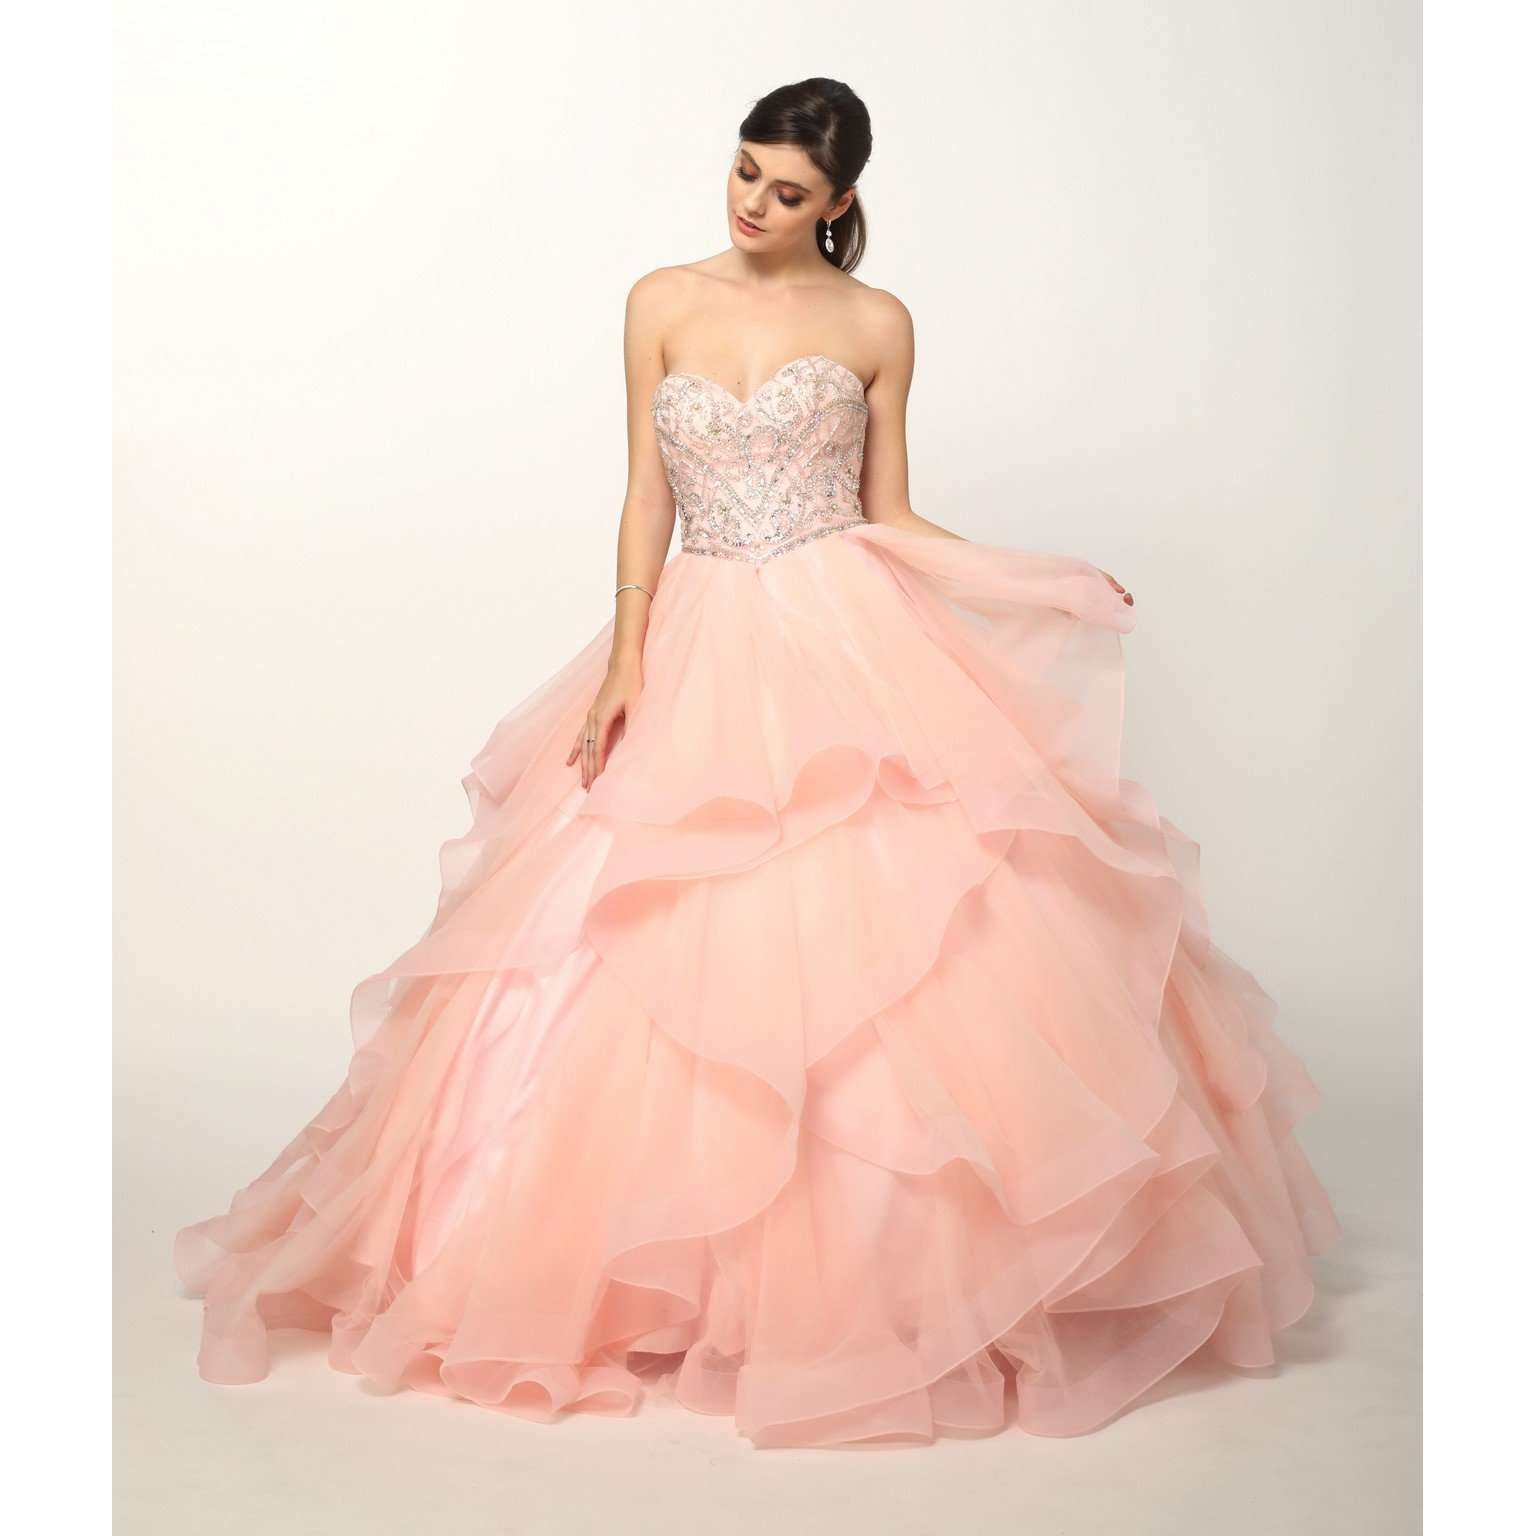 Sweetheart Beaded Top and Ruffle Skirt Ballgown 369 - Julietdresses